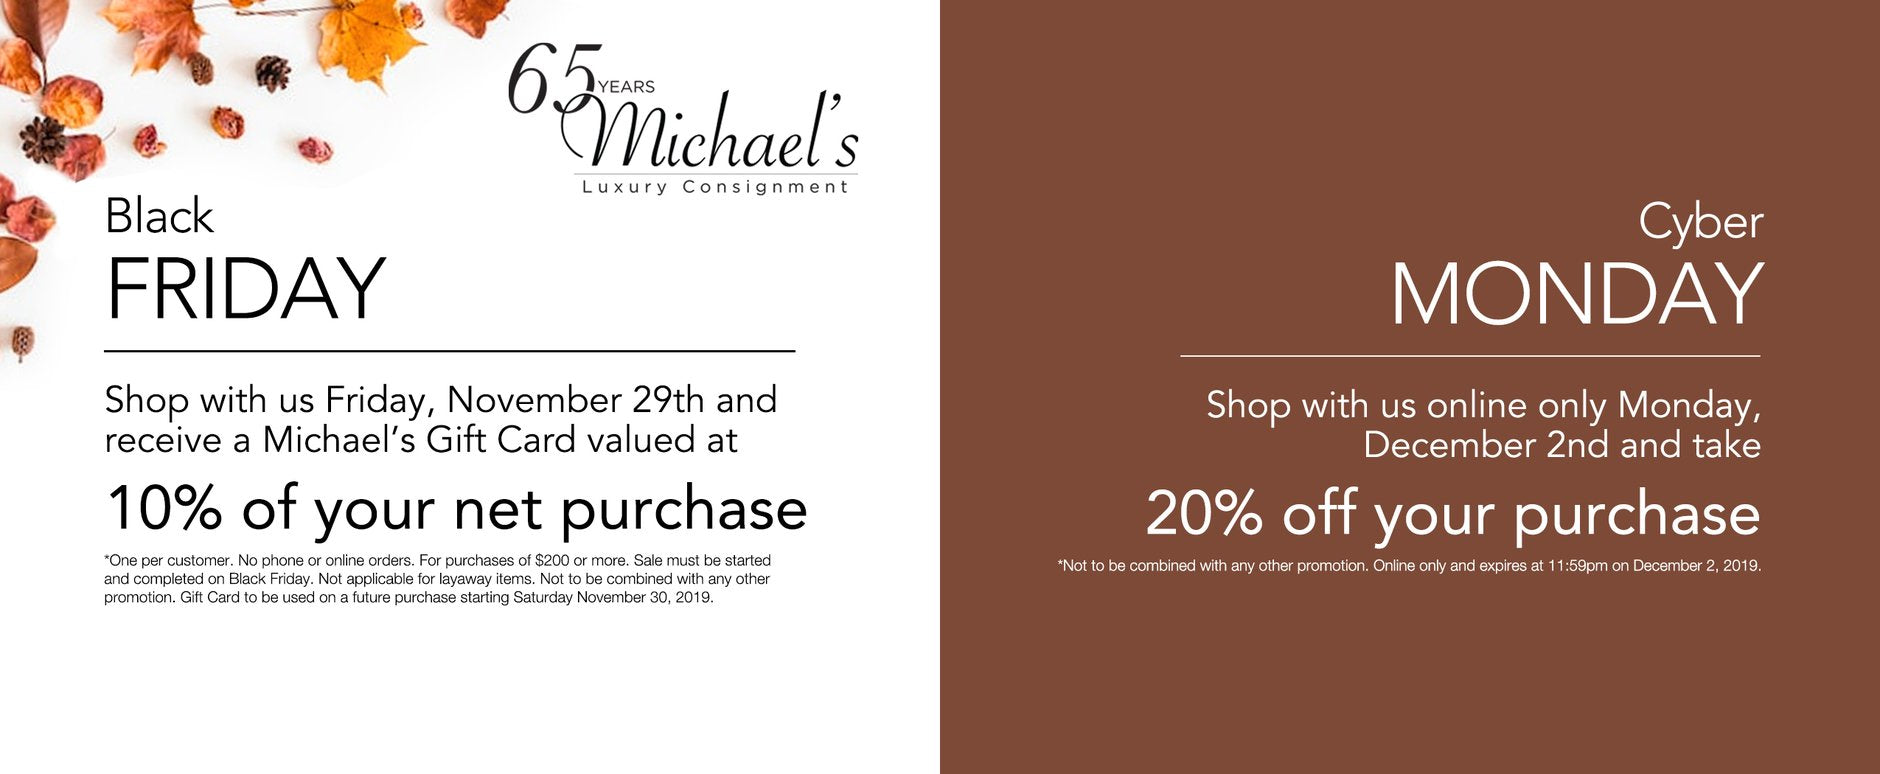 a29d30ba21 Designer Women s Consignment - Michael s Consignment NYC